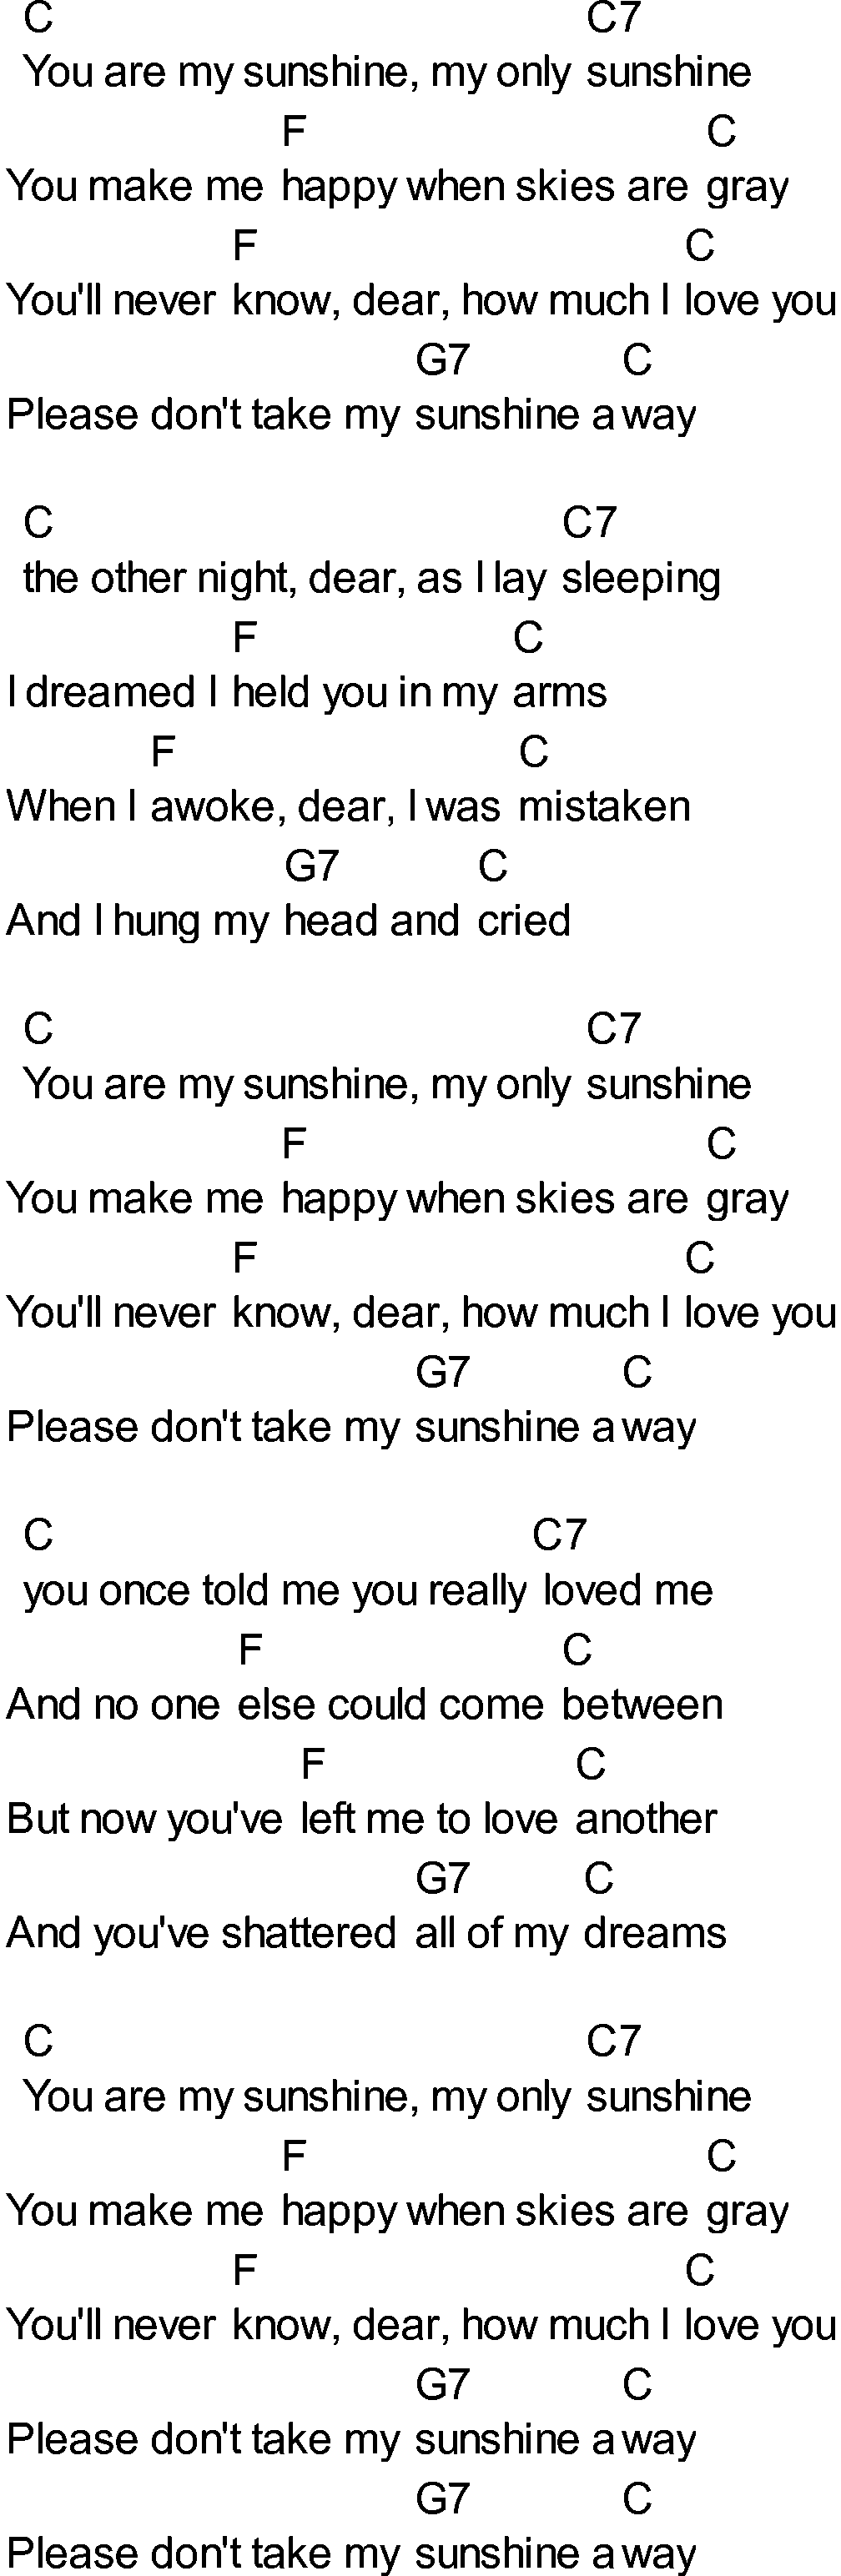 Bluegrass Songs With Chords You Are My Sunshine Monets Pintrest